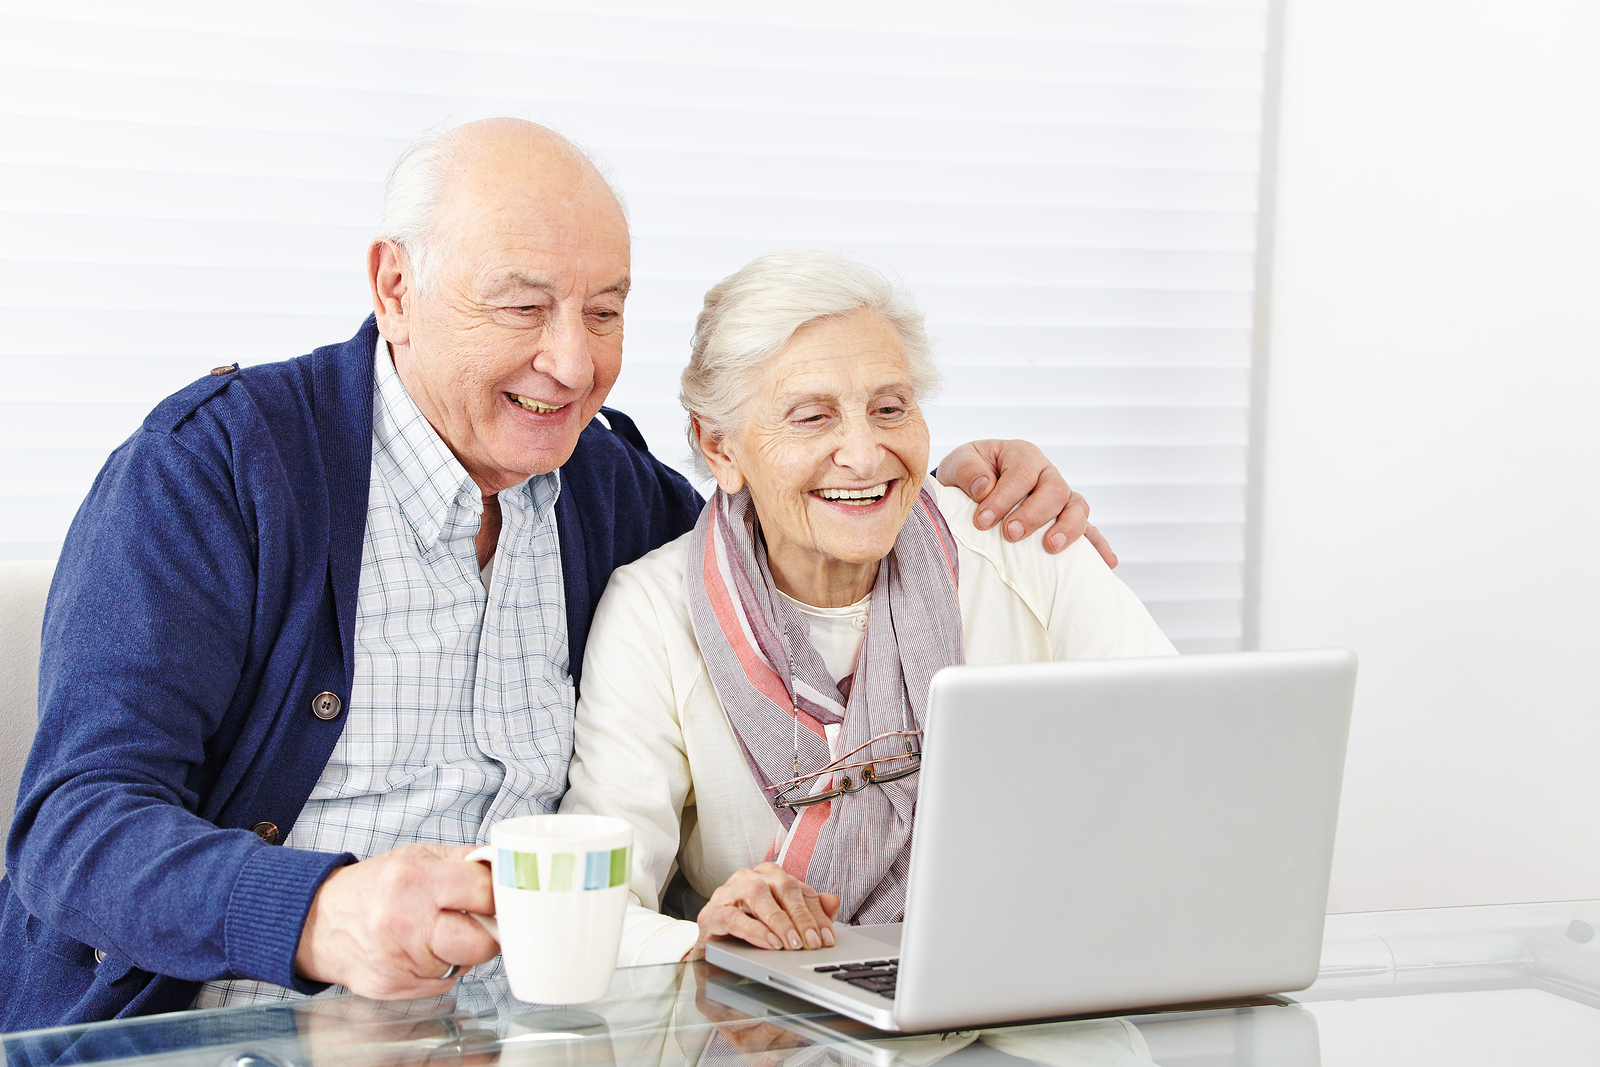 Happy-senior-citizen-couple